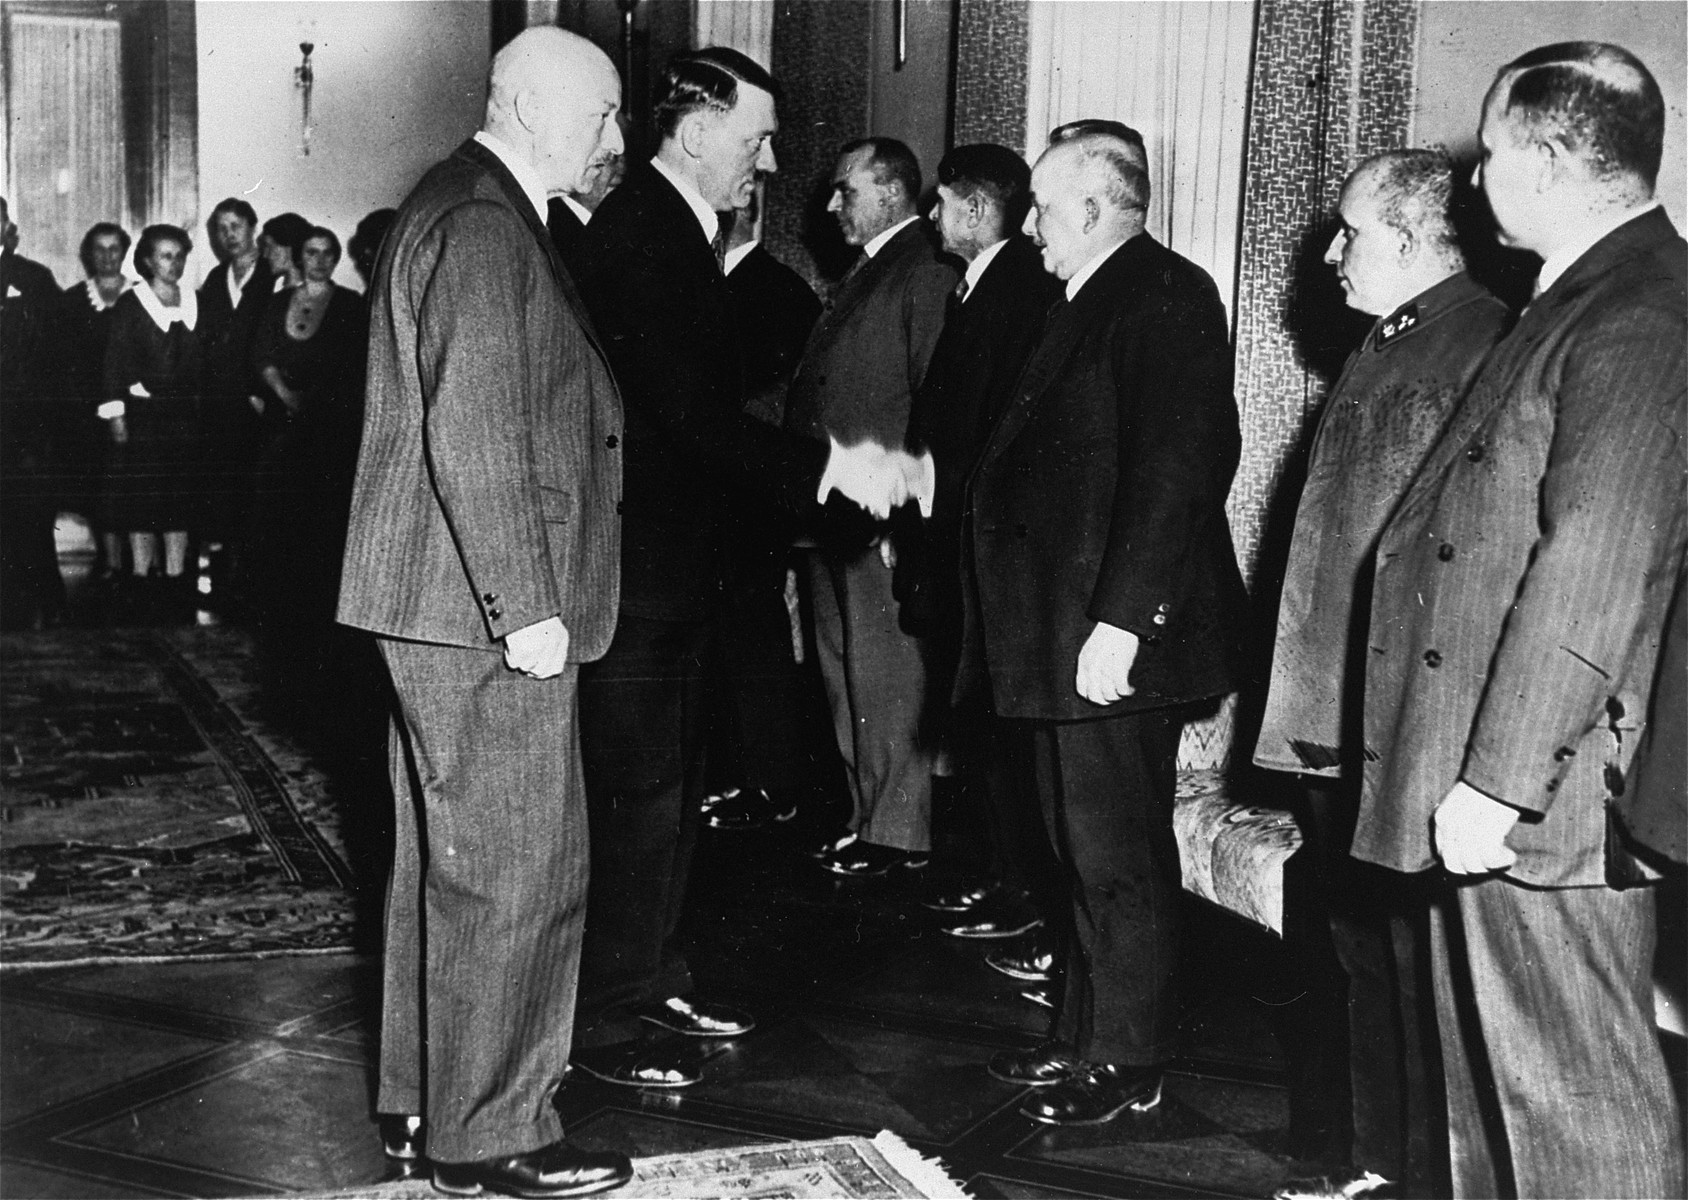 Adolf Hitler greets a group of unidentified dignitaries.